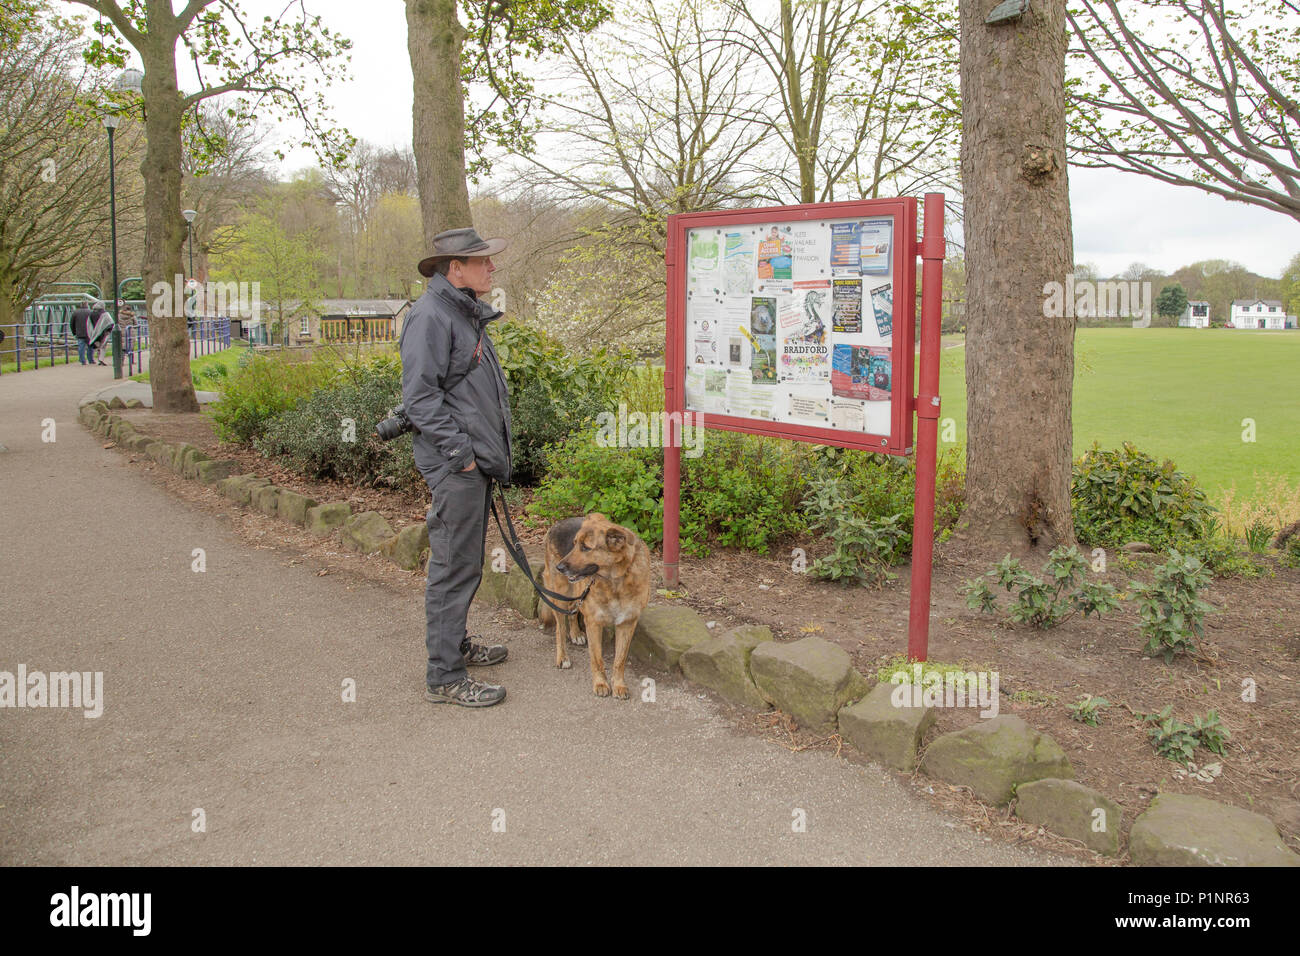 A male dog walker is looking at a tourist noticeboard in Roberts Park, Saltaire. - Stock Image